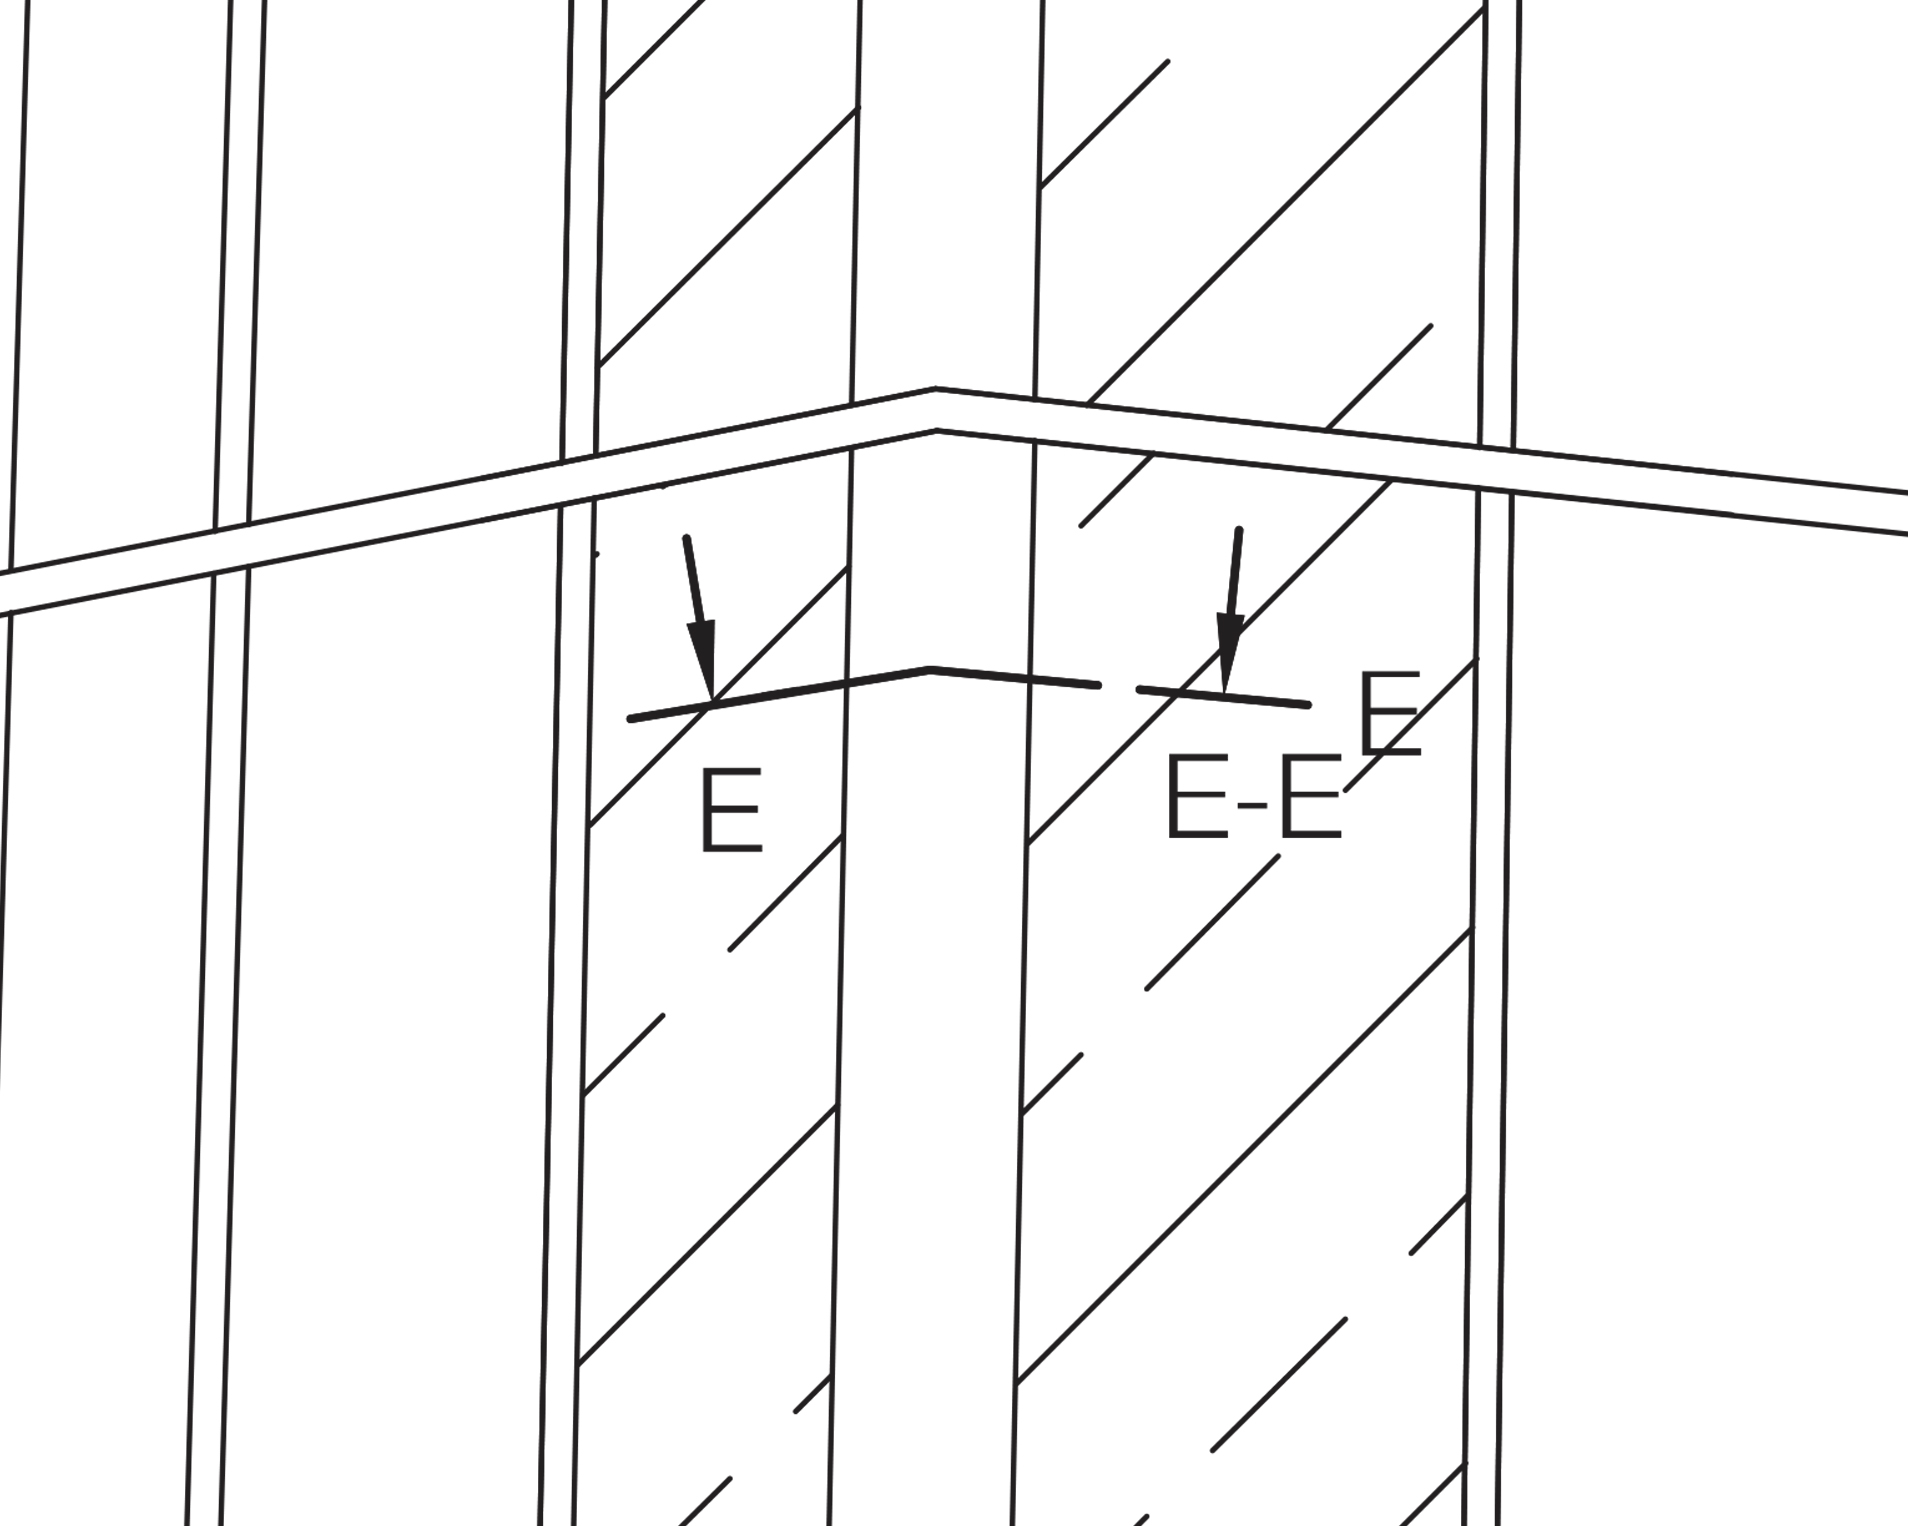 External Corner / Section E-E